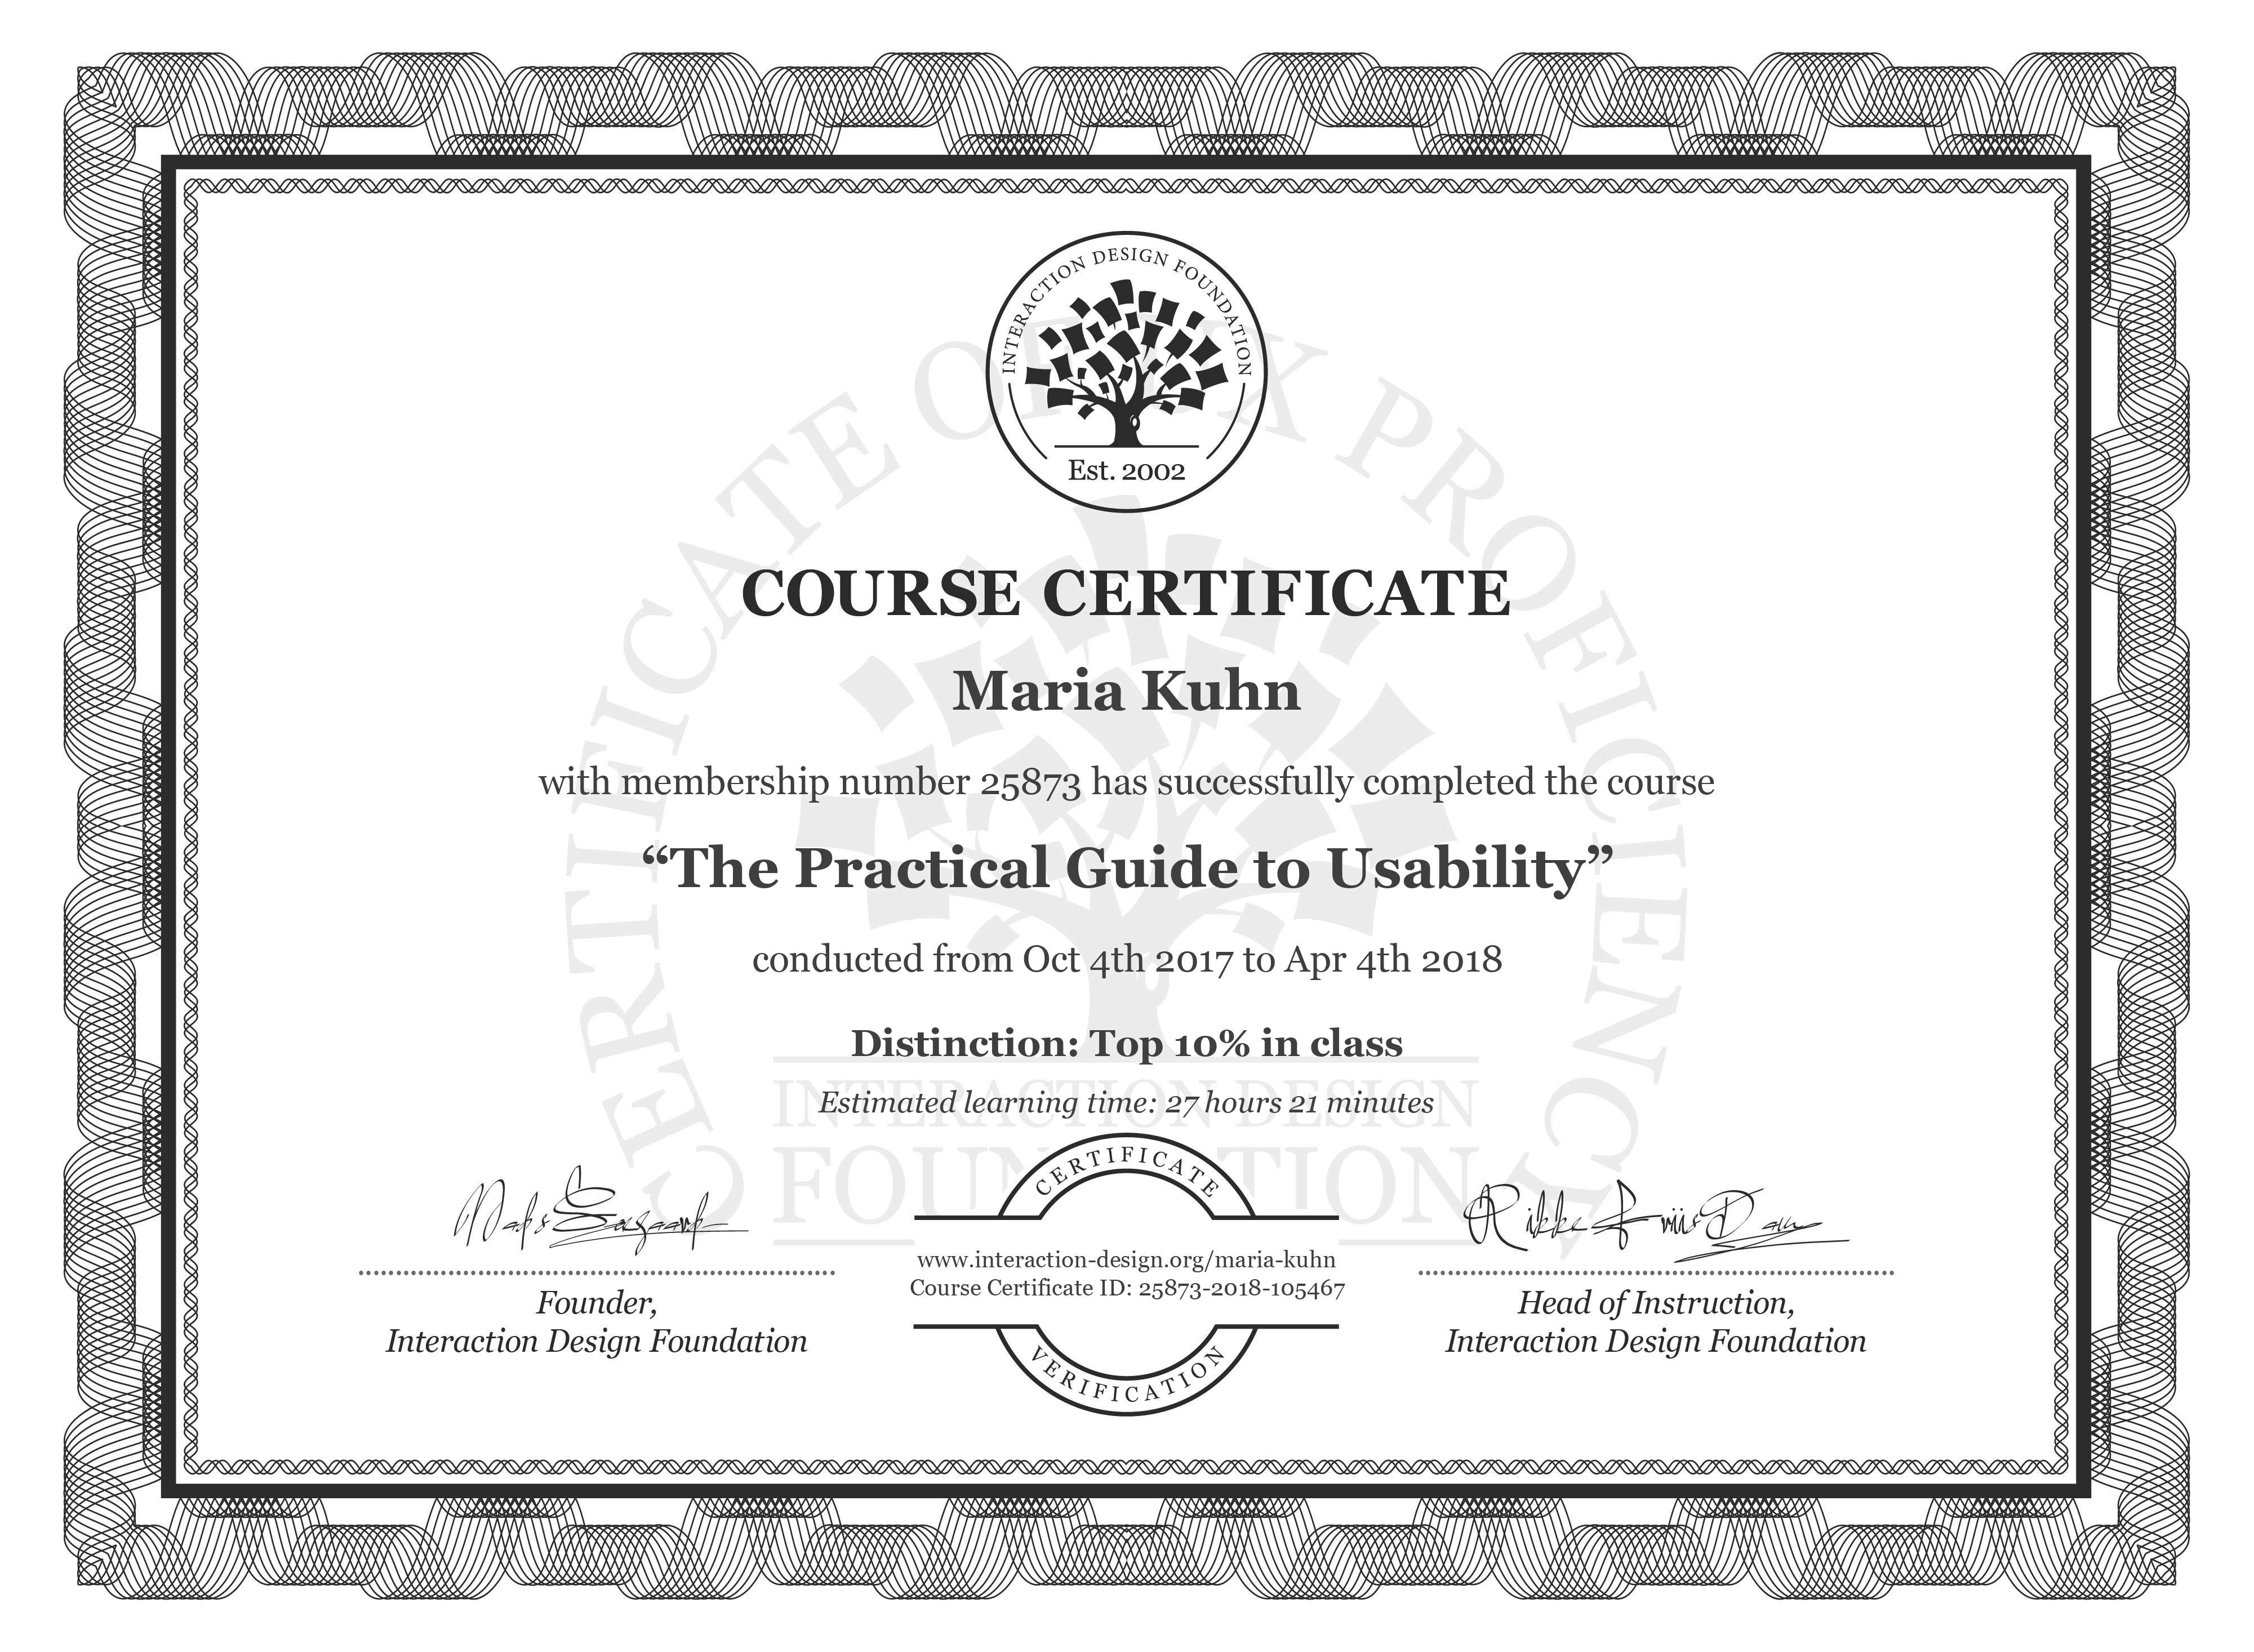 Maria Kuhn: Course Certificate - The Practical Guide to Usability